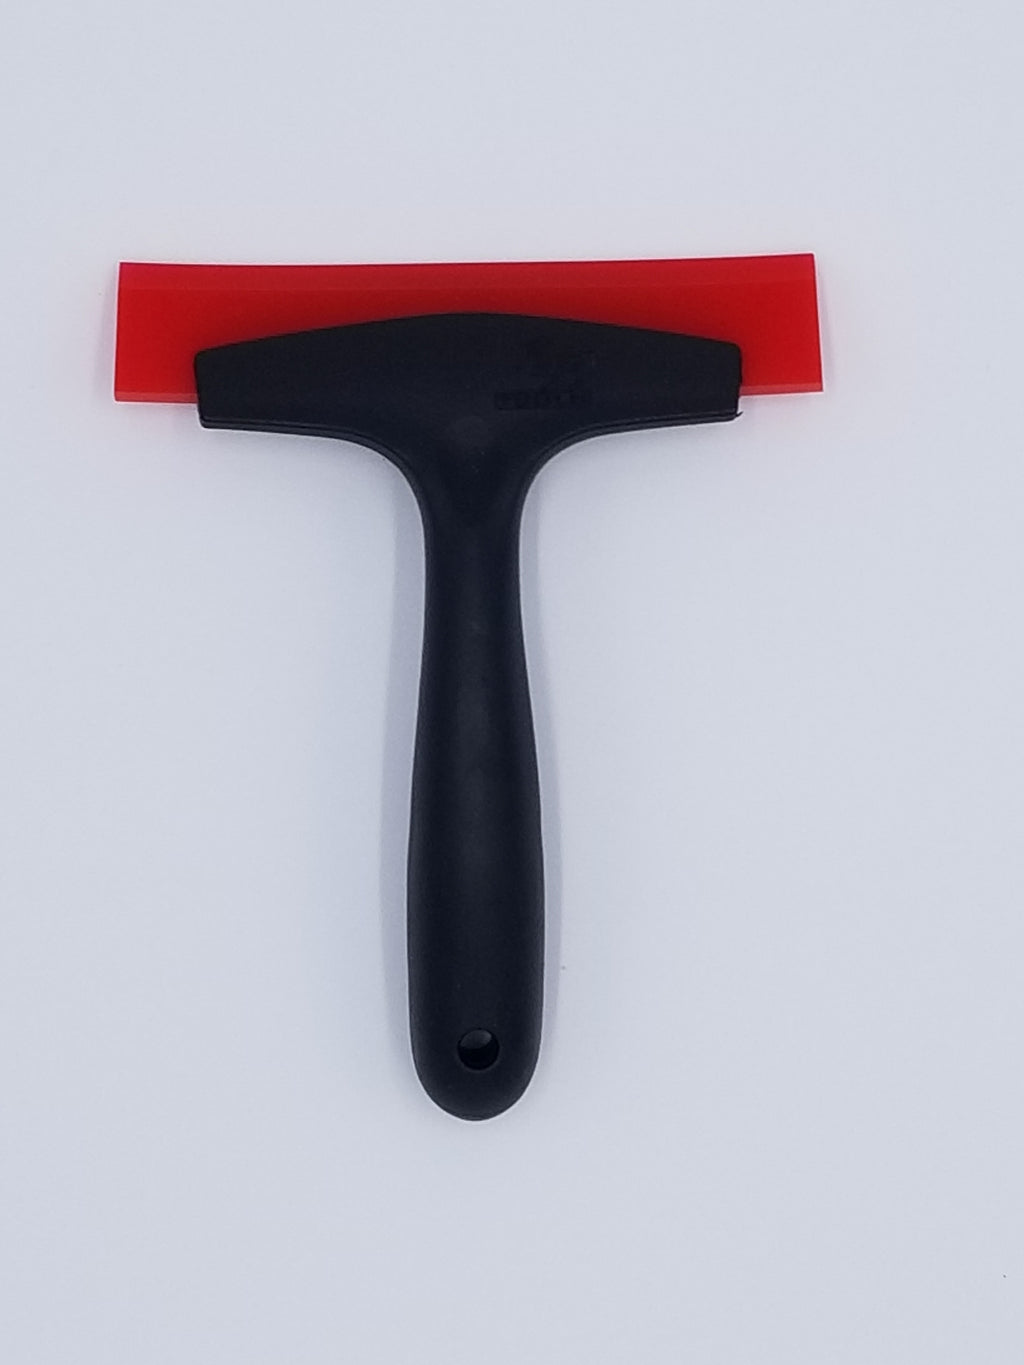 AE-137 - Black Handle W/Narrow Squeegee Blade - AE QUALITY FILM